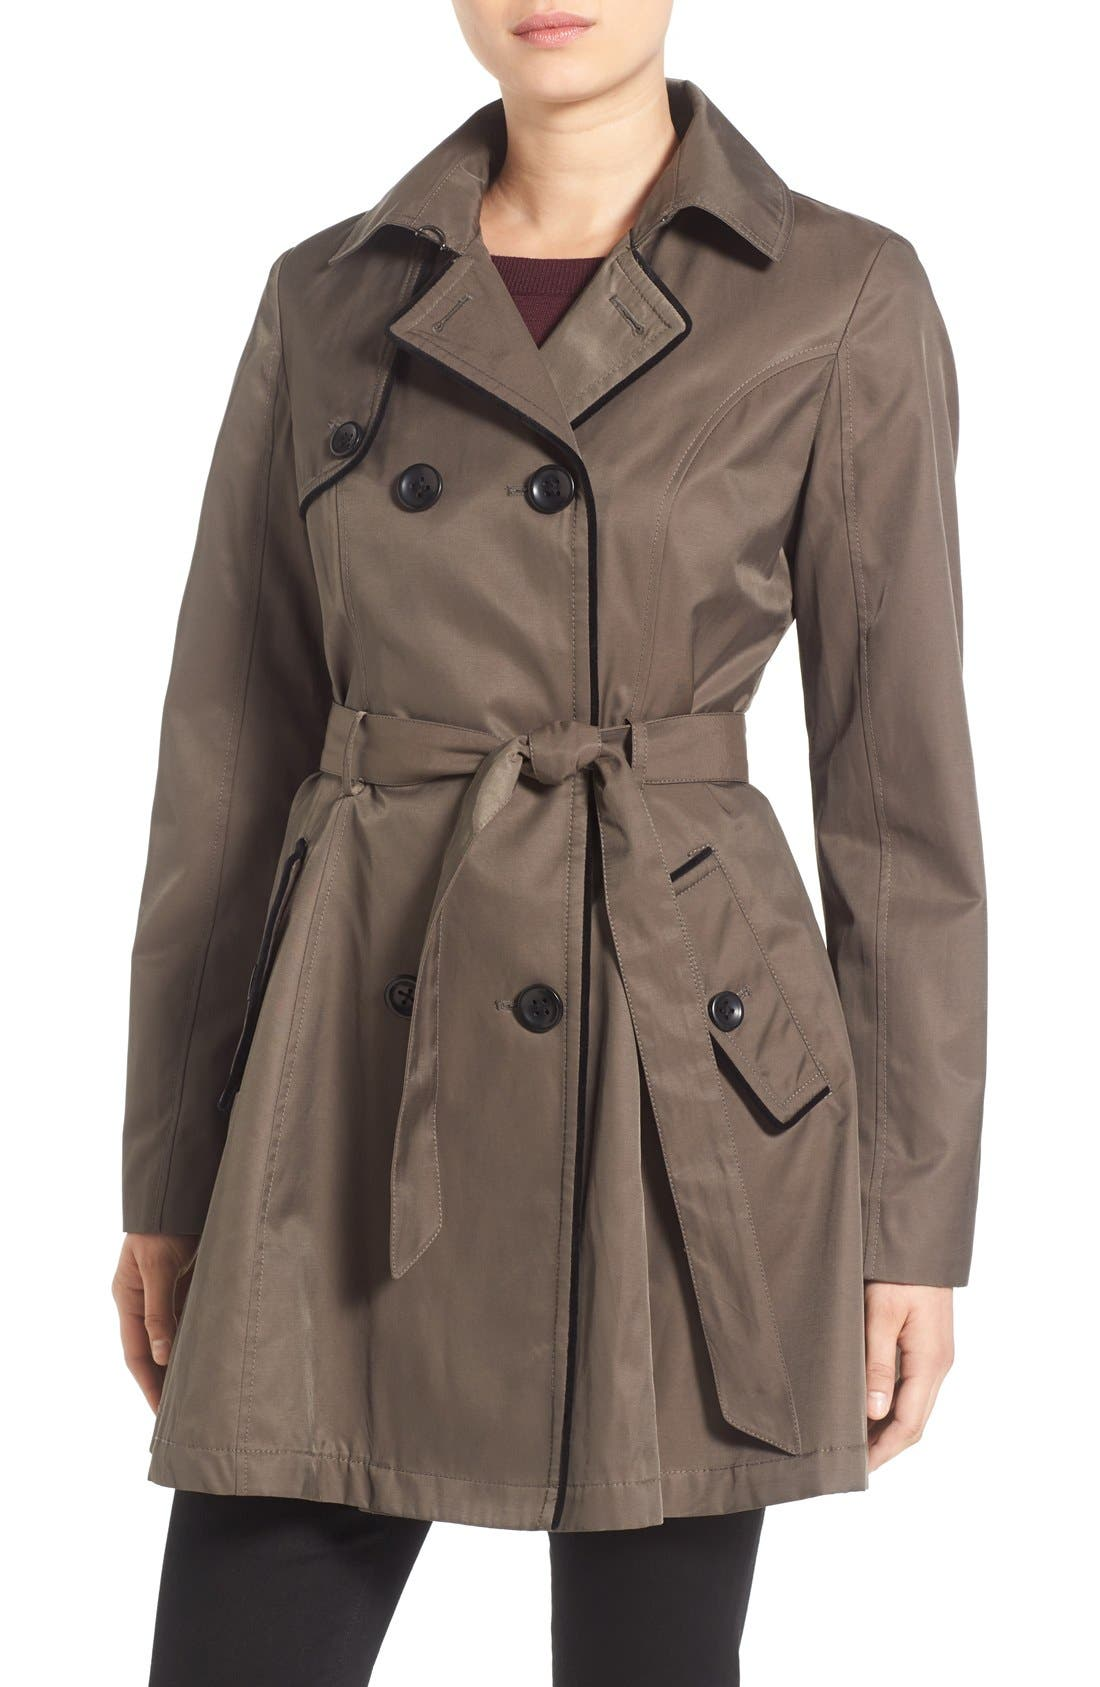 Betsey Johnson Corset Back Trench Coat